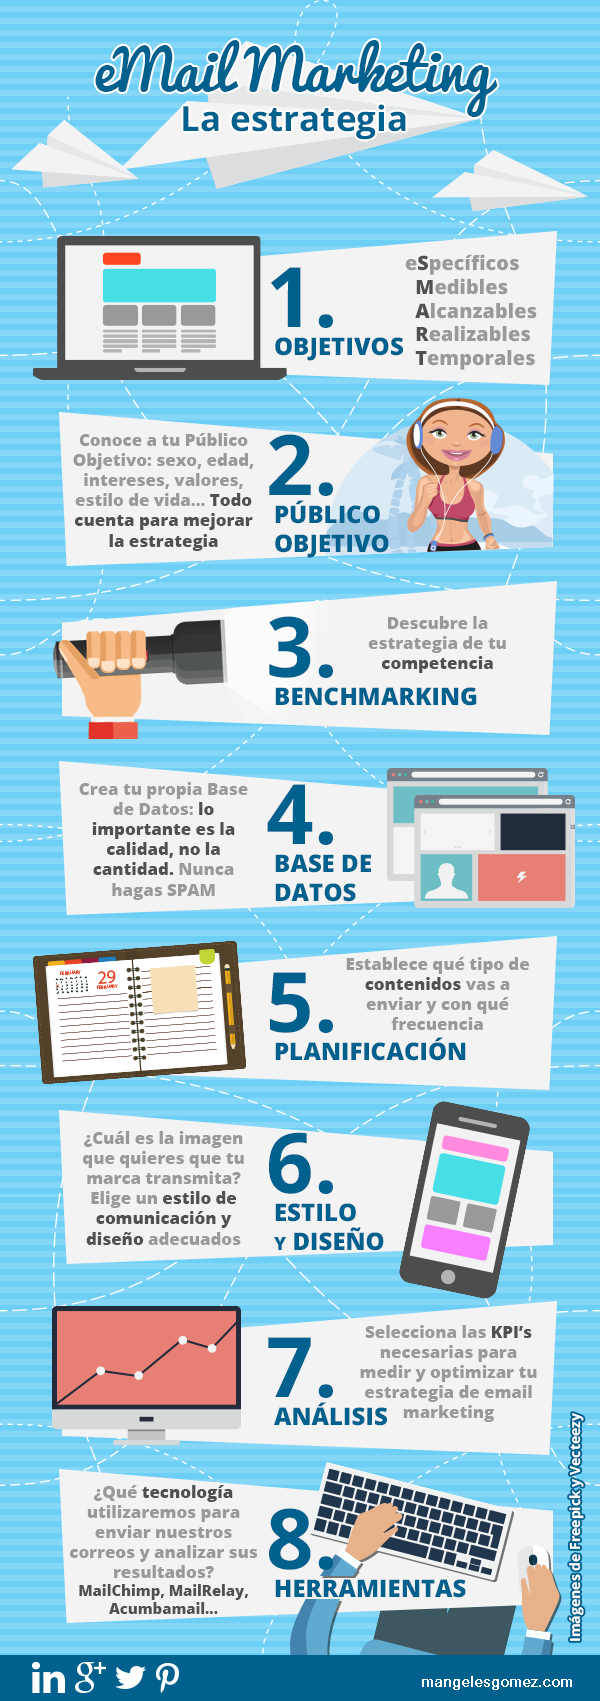 eMail Marketing: la estrategia